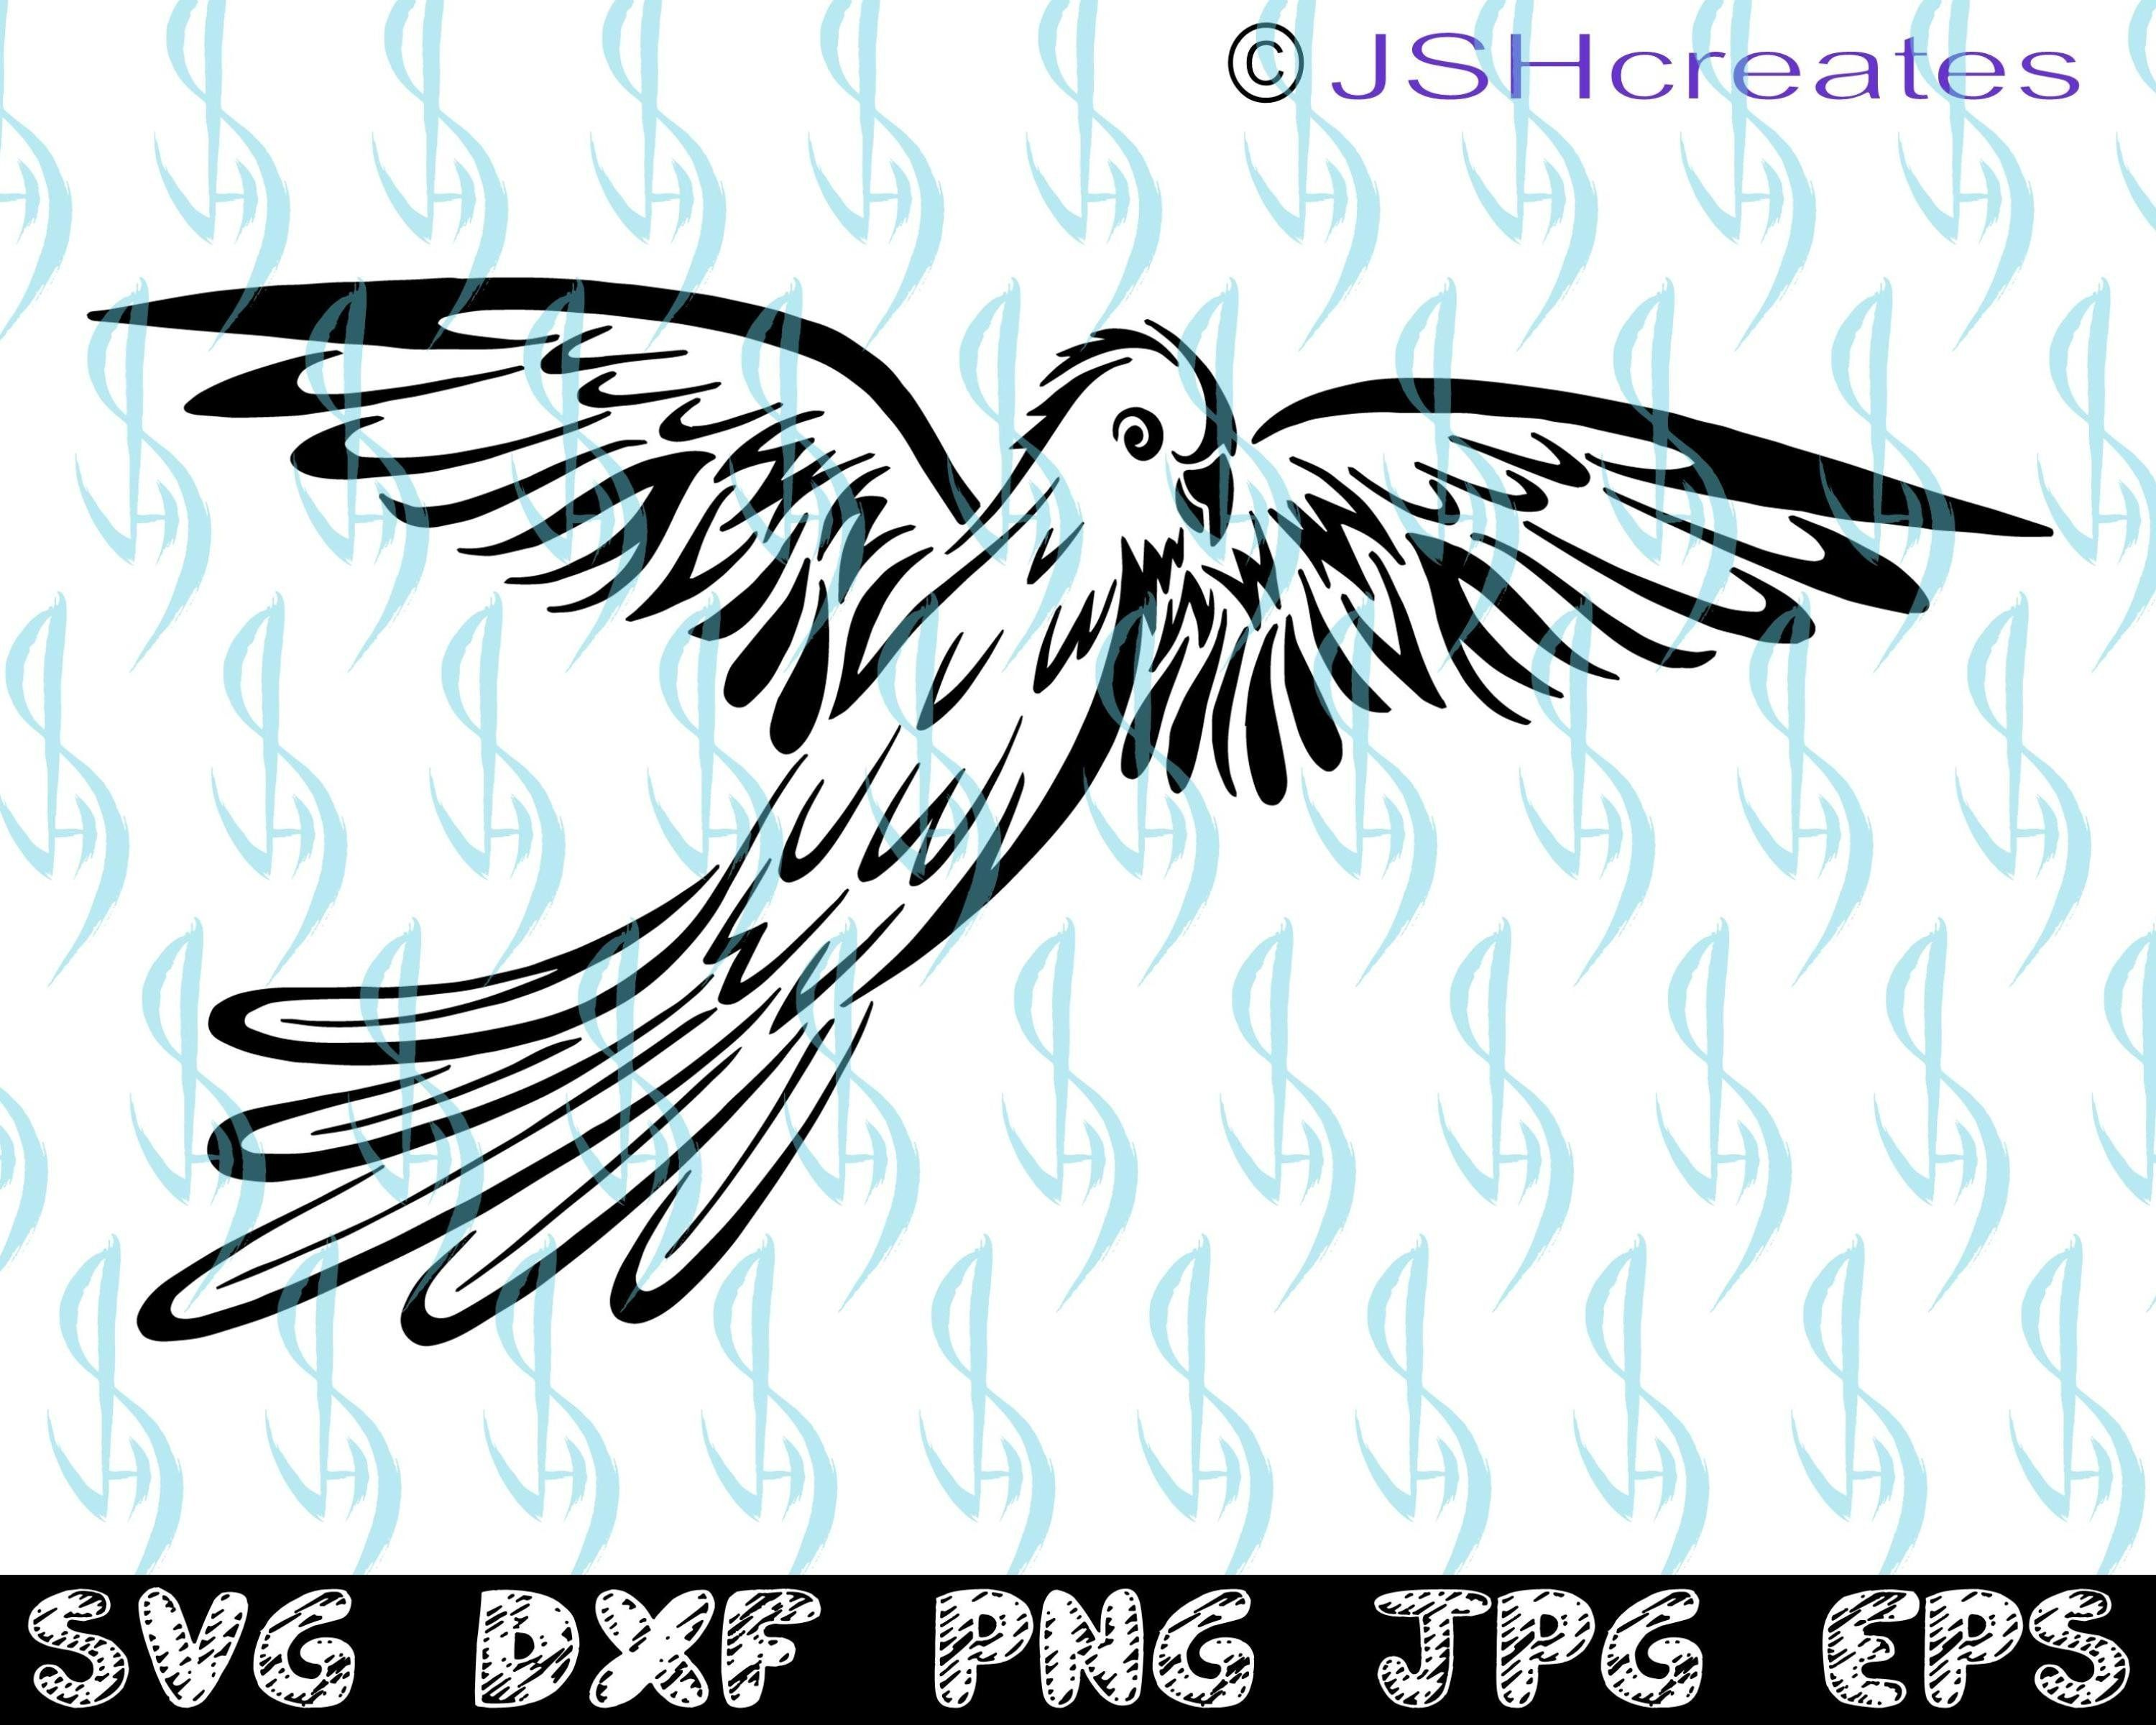 Parrot svg, Bird svg, Parrot, Bird, SVG, Wings, Bird Flying.